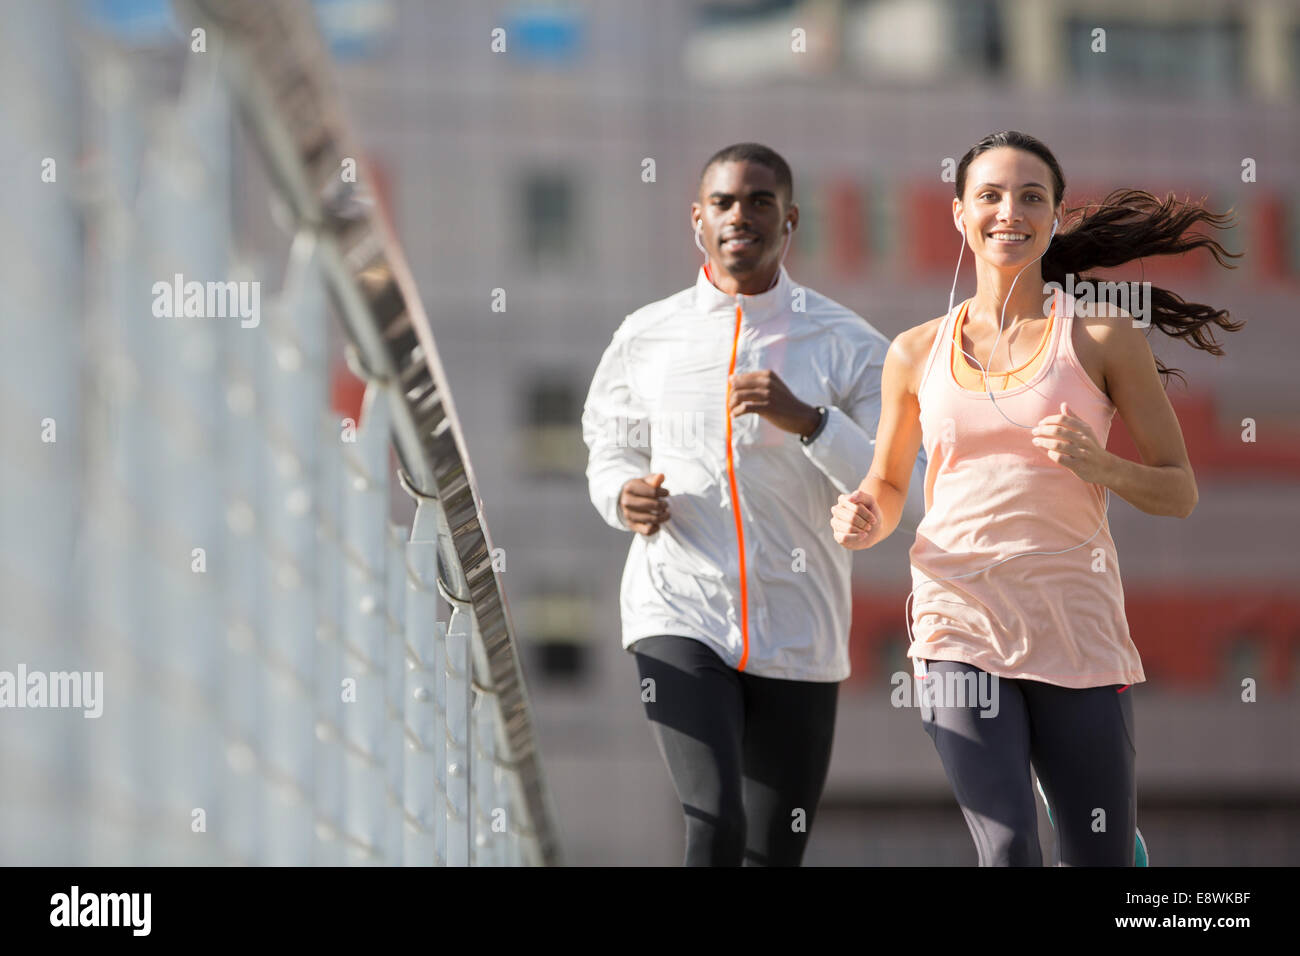 Friends running through city streets together Stock Photo